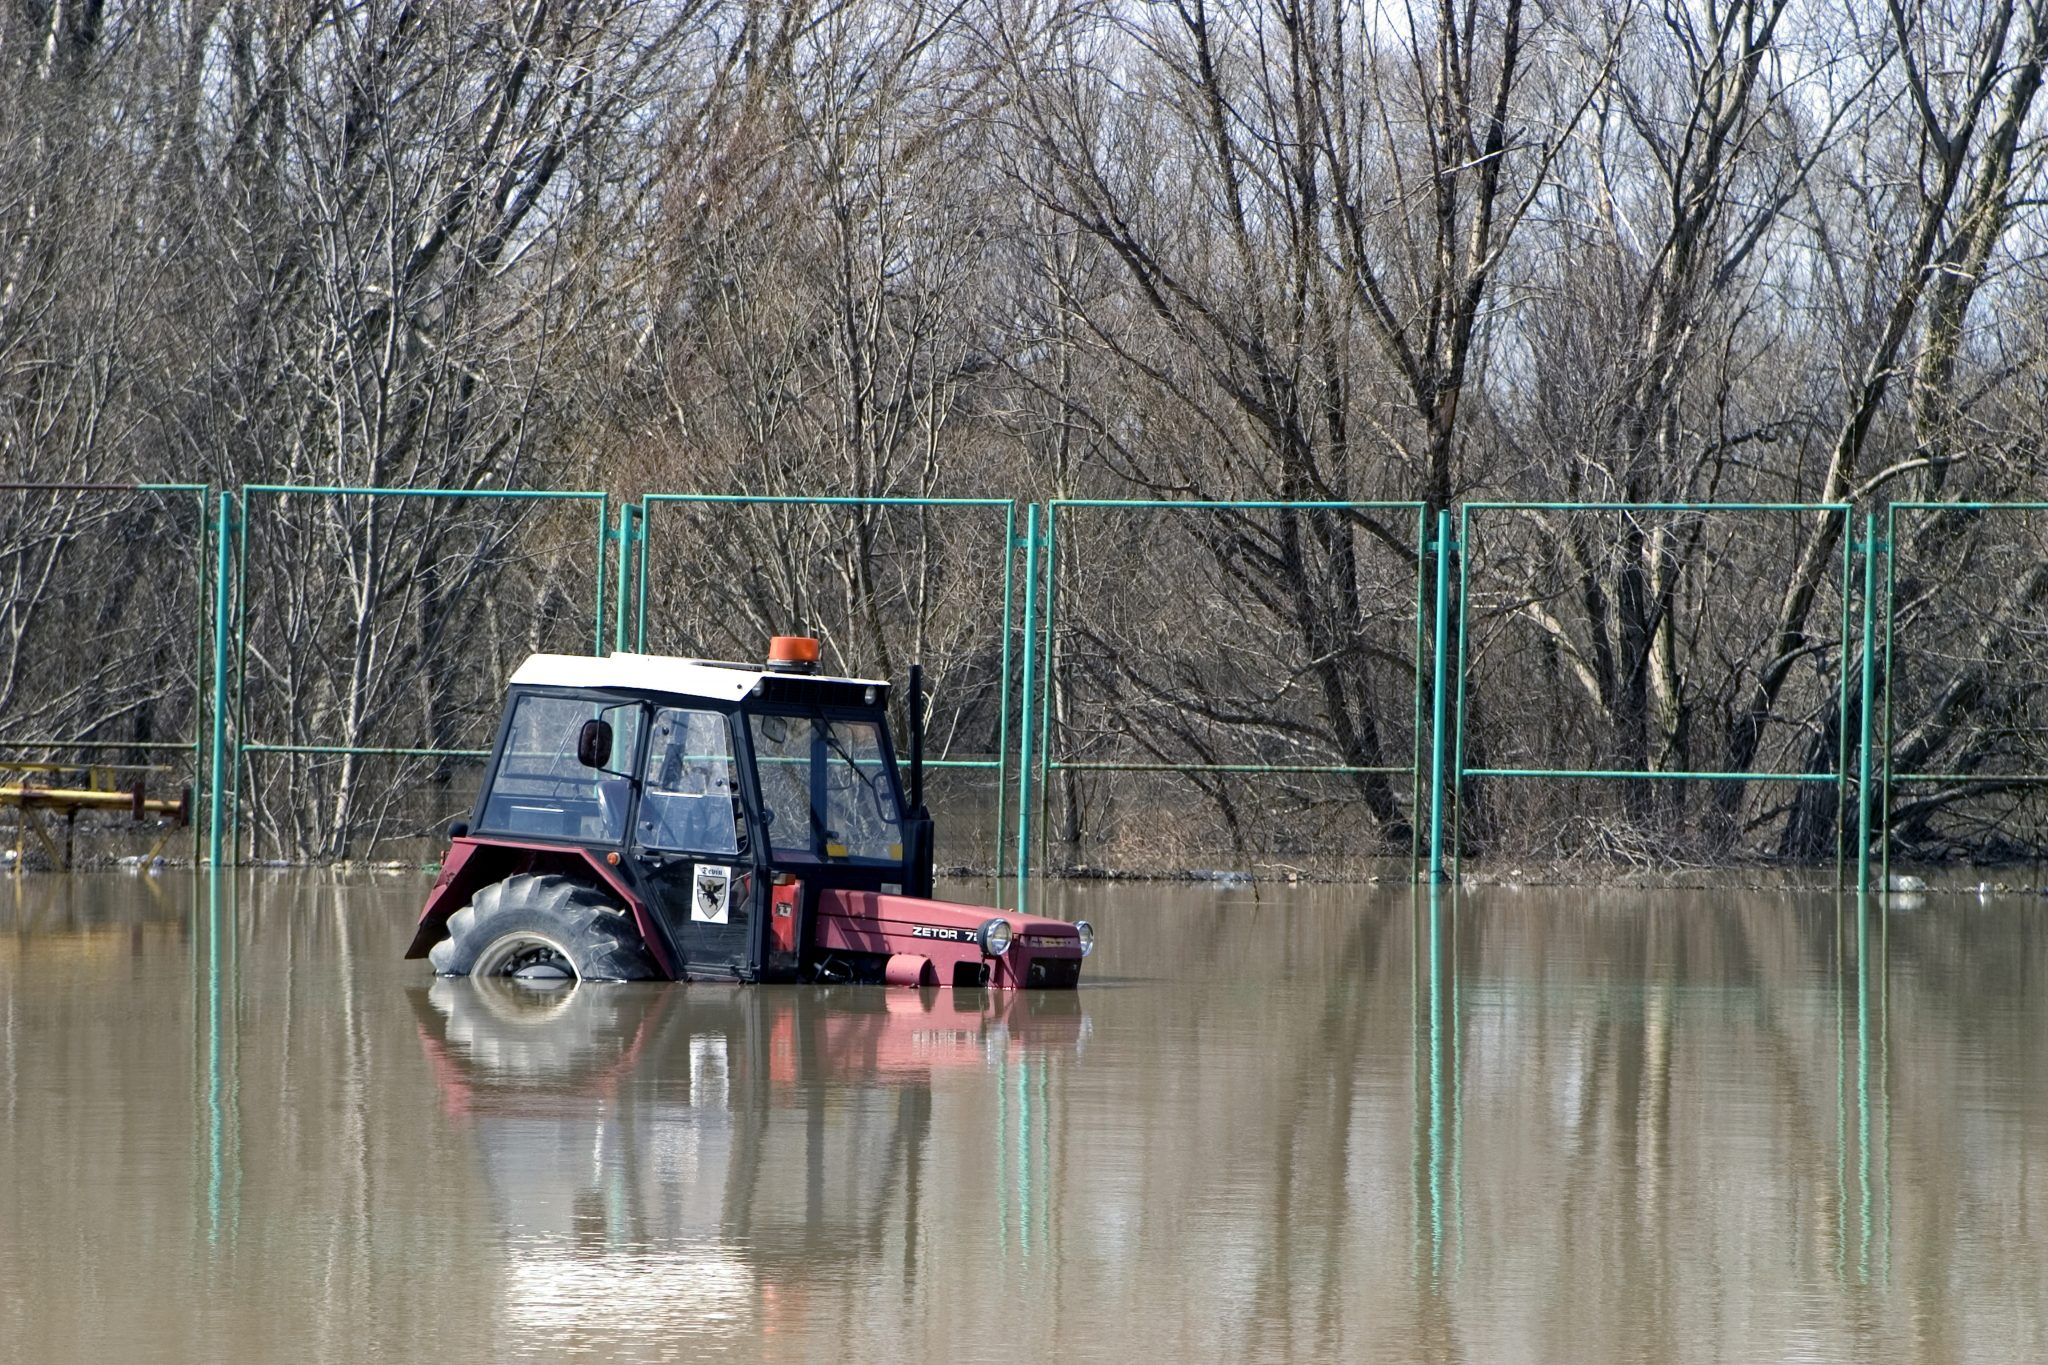 tractor in flood water